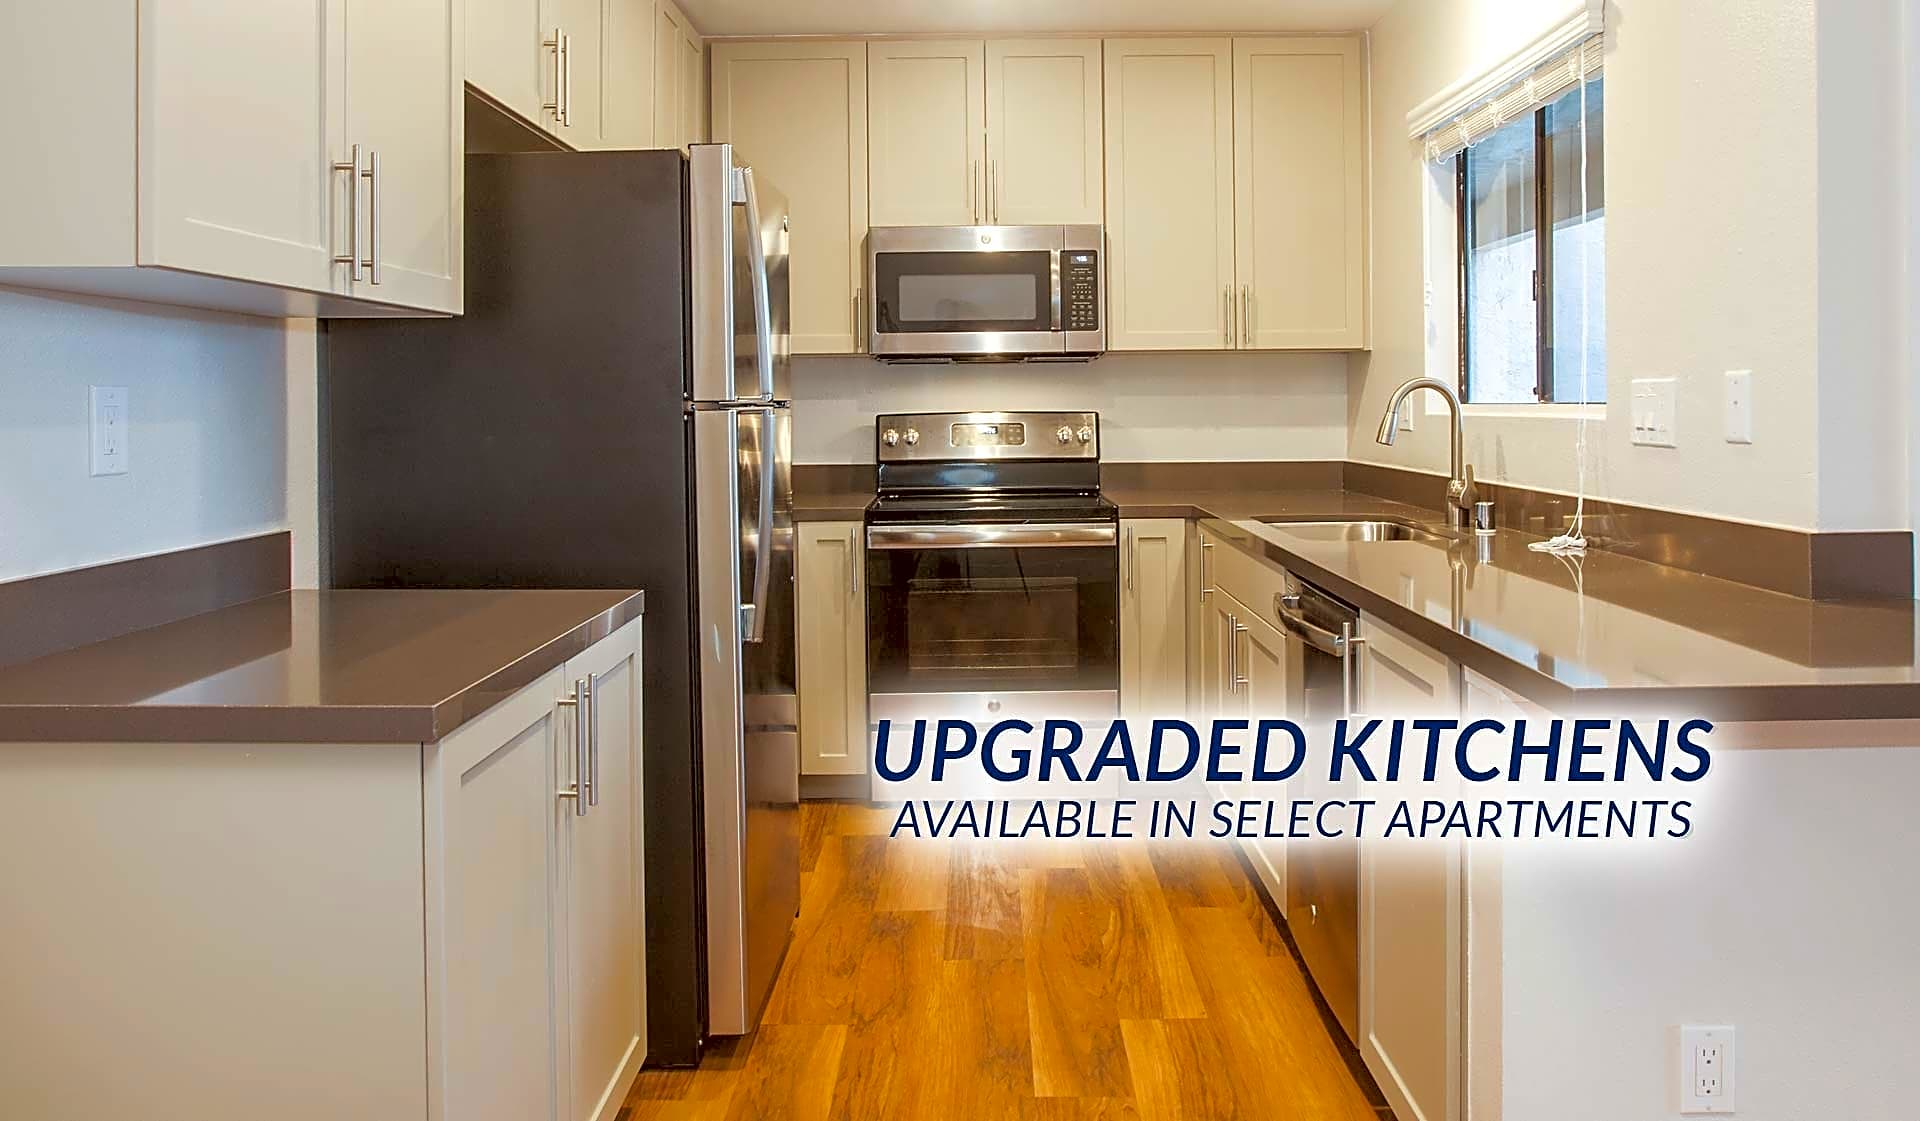 Upgraded kitchens in select homes